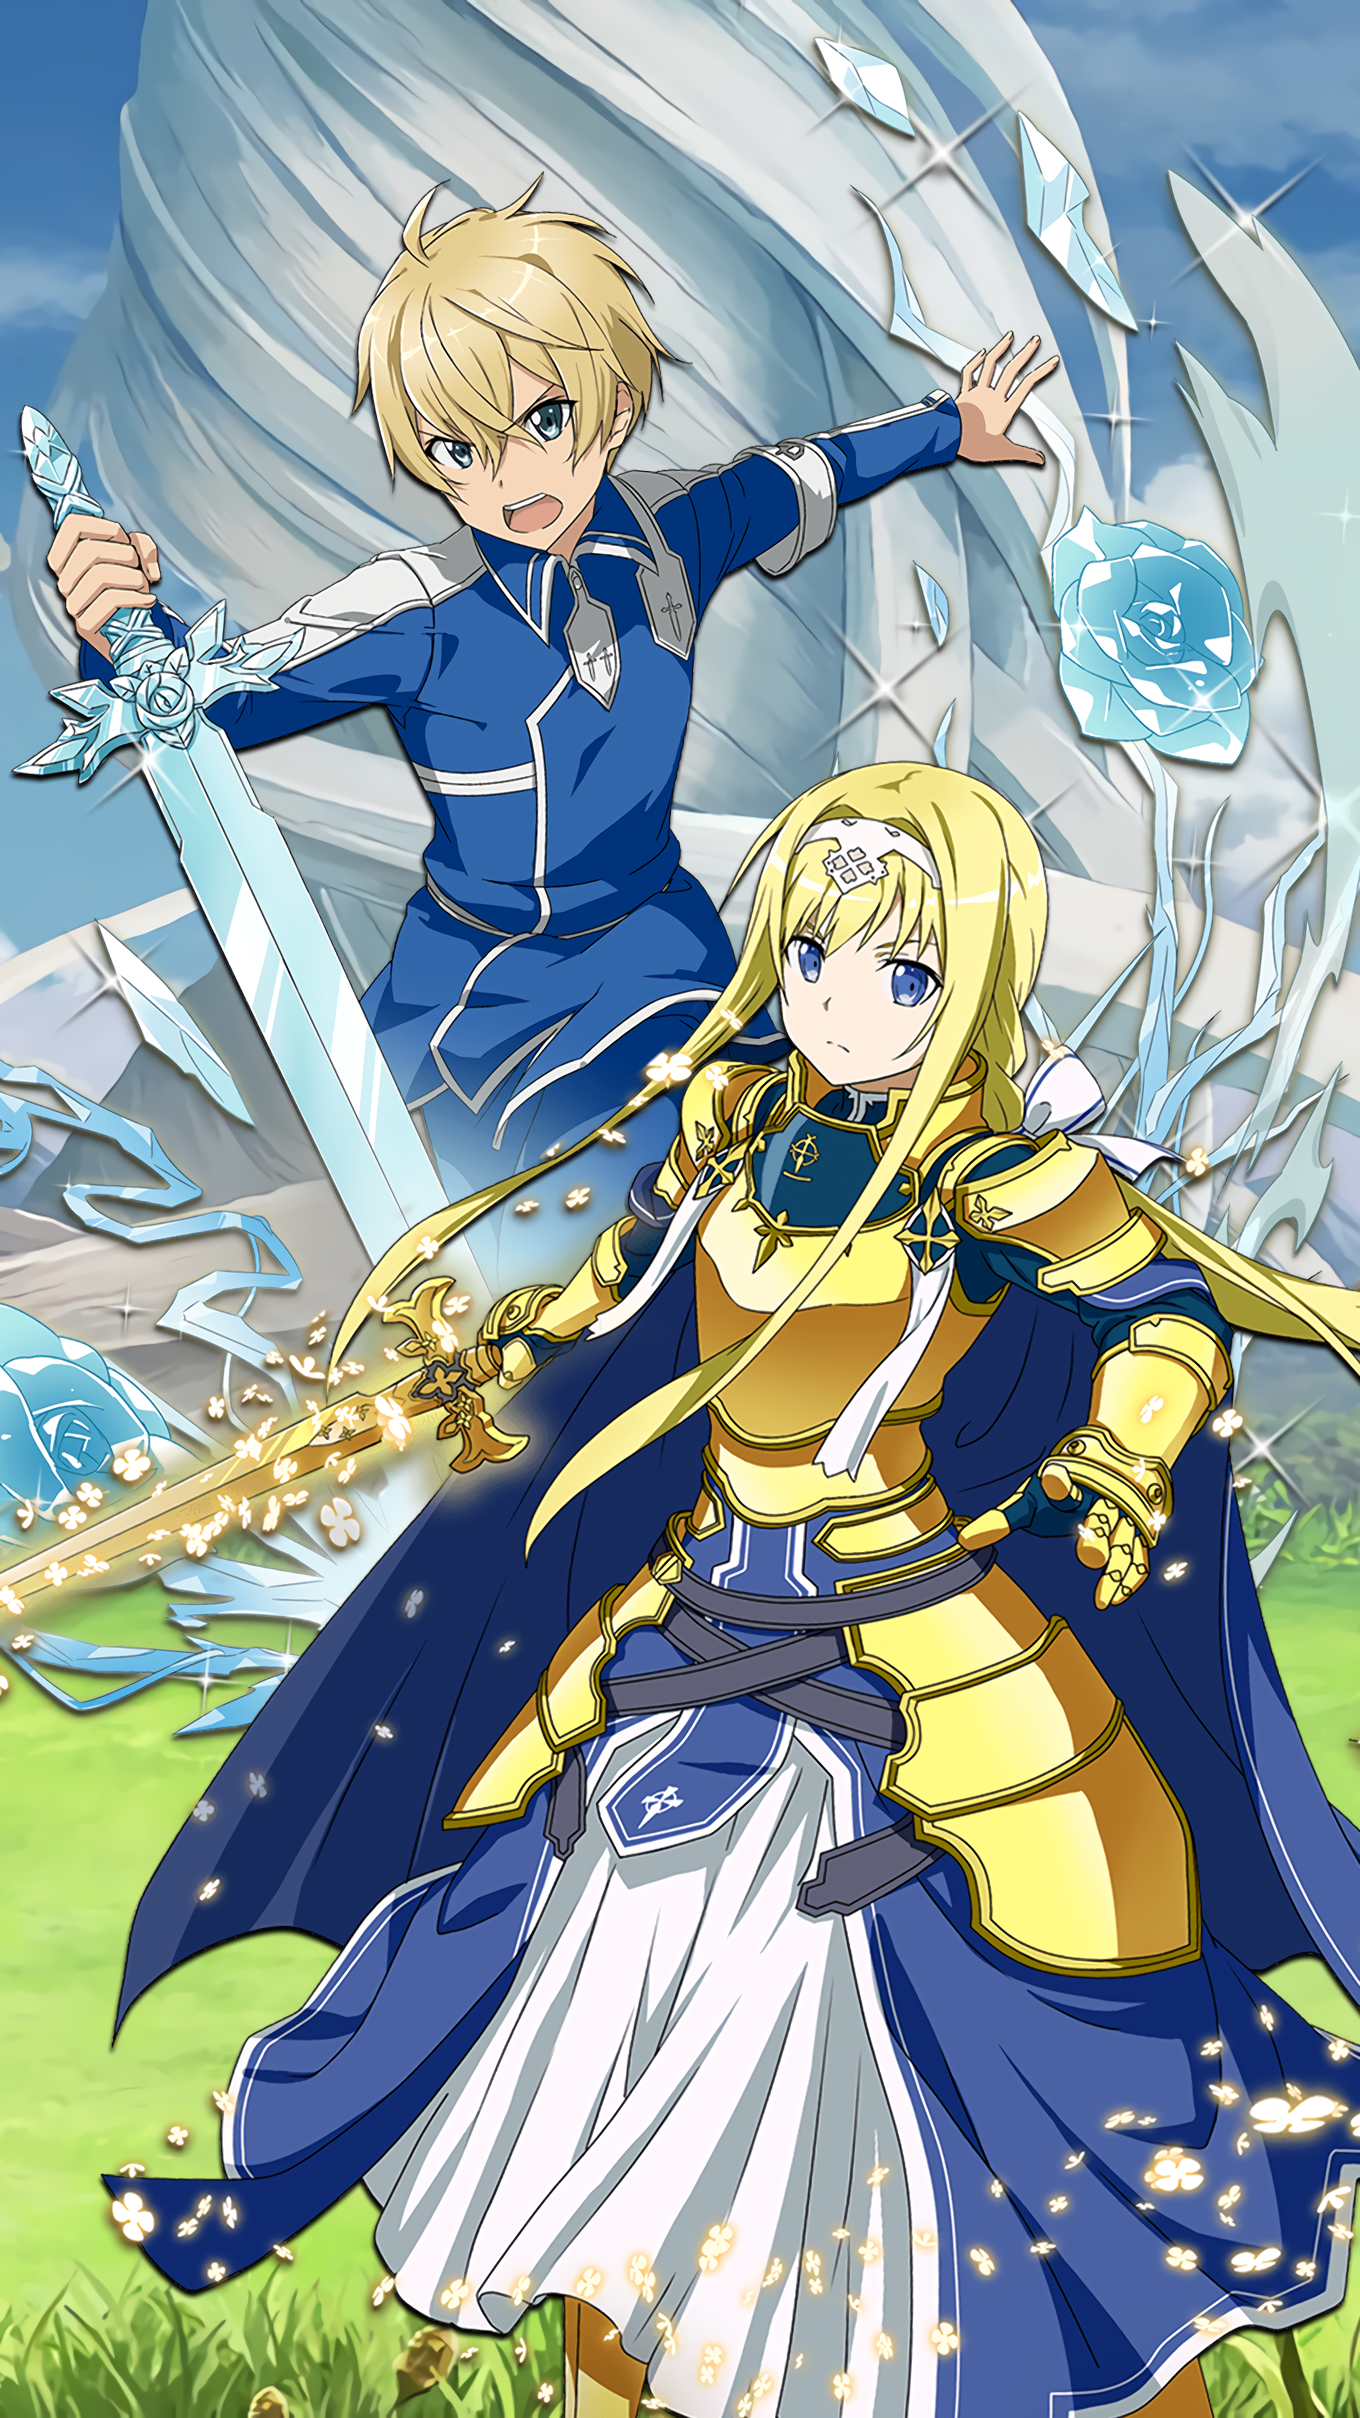 Sword Art Online: Alicization - War of Underworld - SAO Alicization Part 2